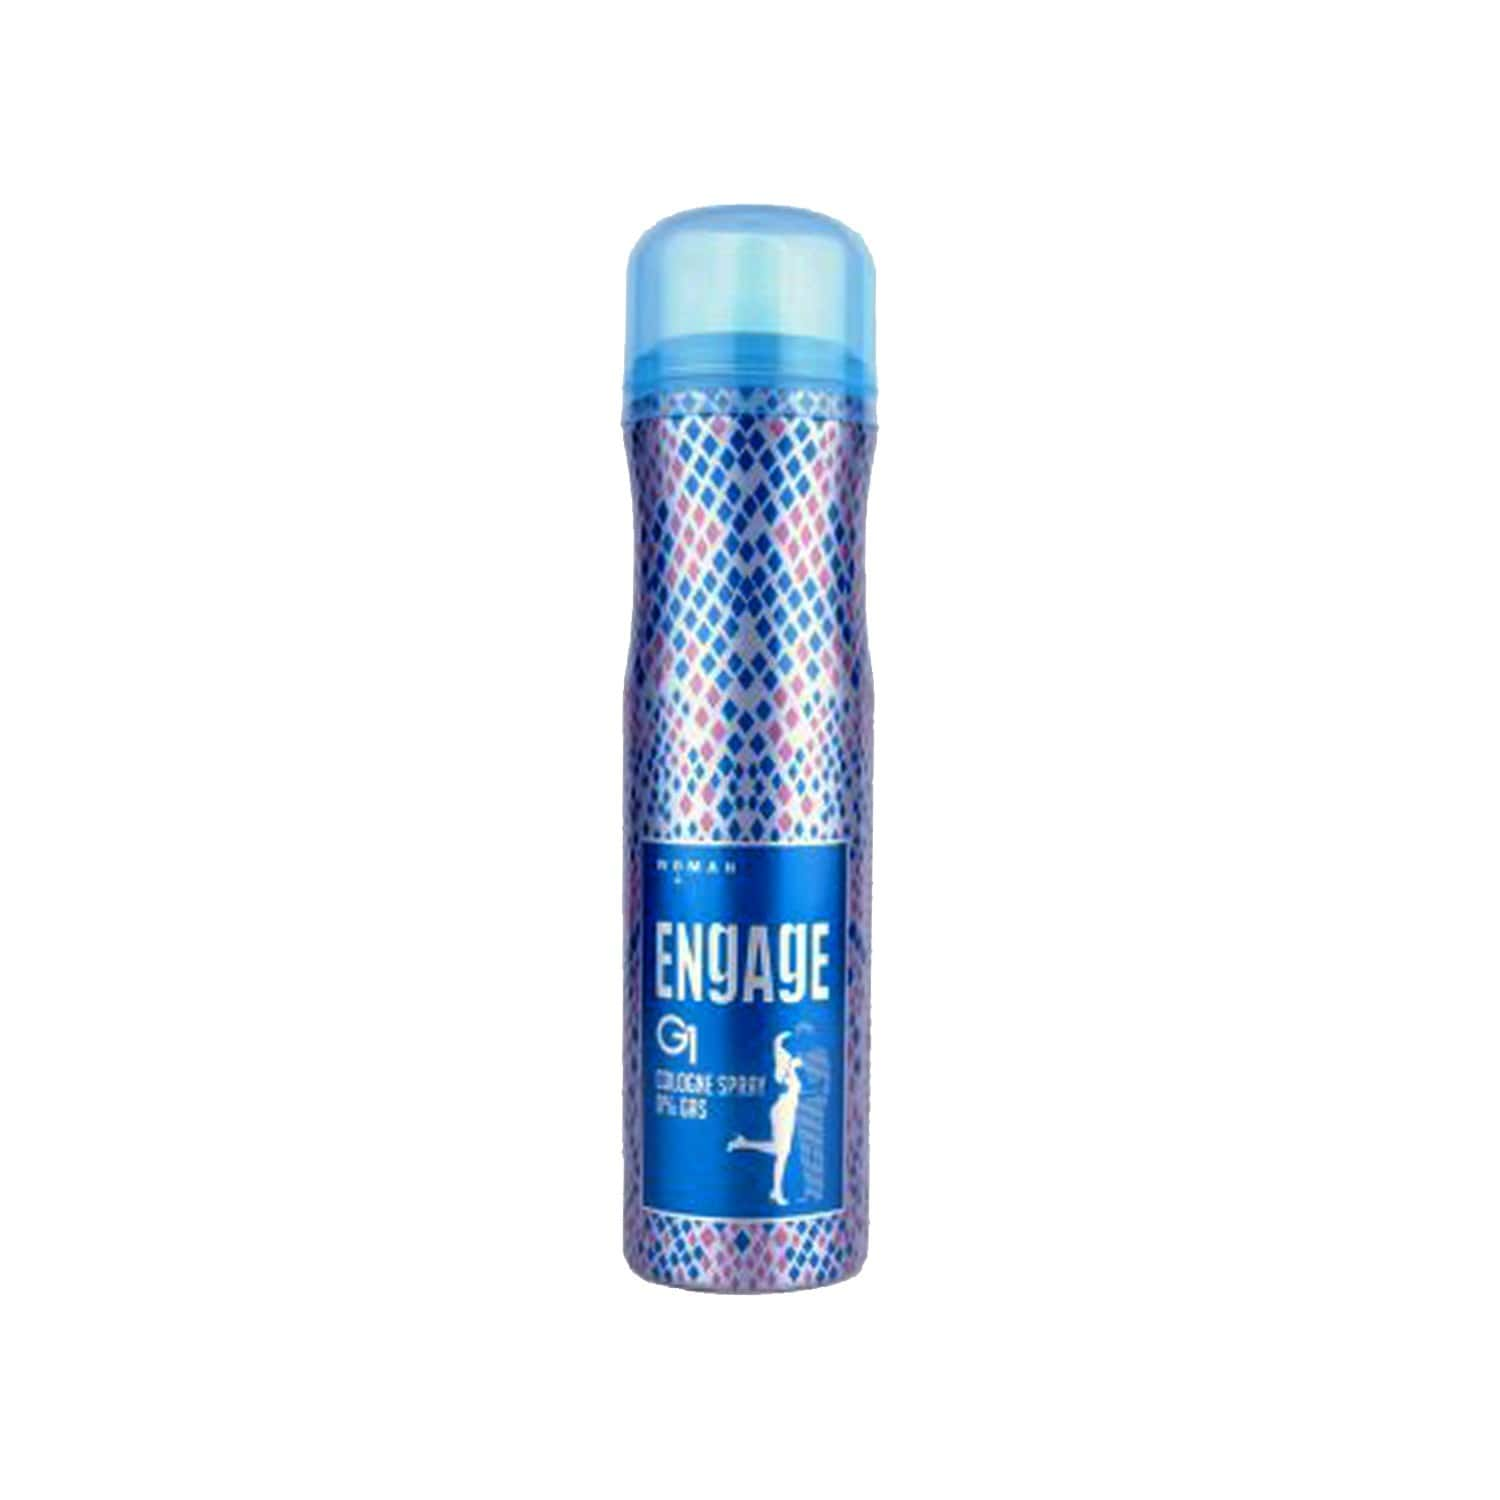 Engage G1 Cologne Spray For Women - 135ml